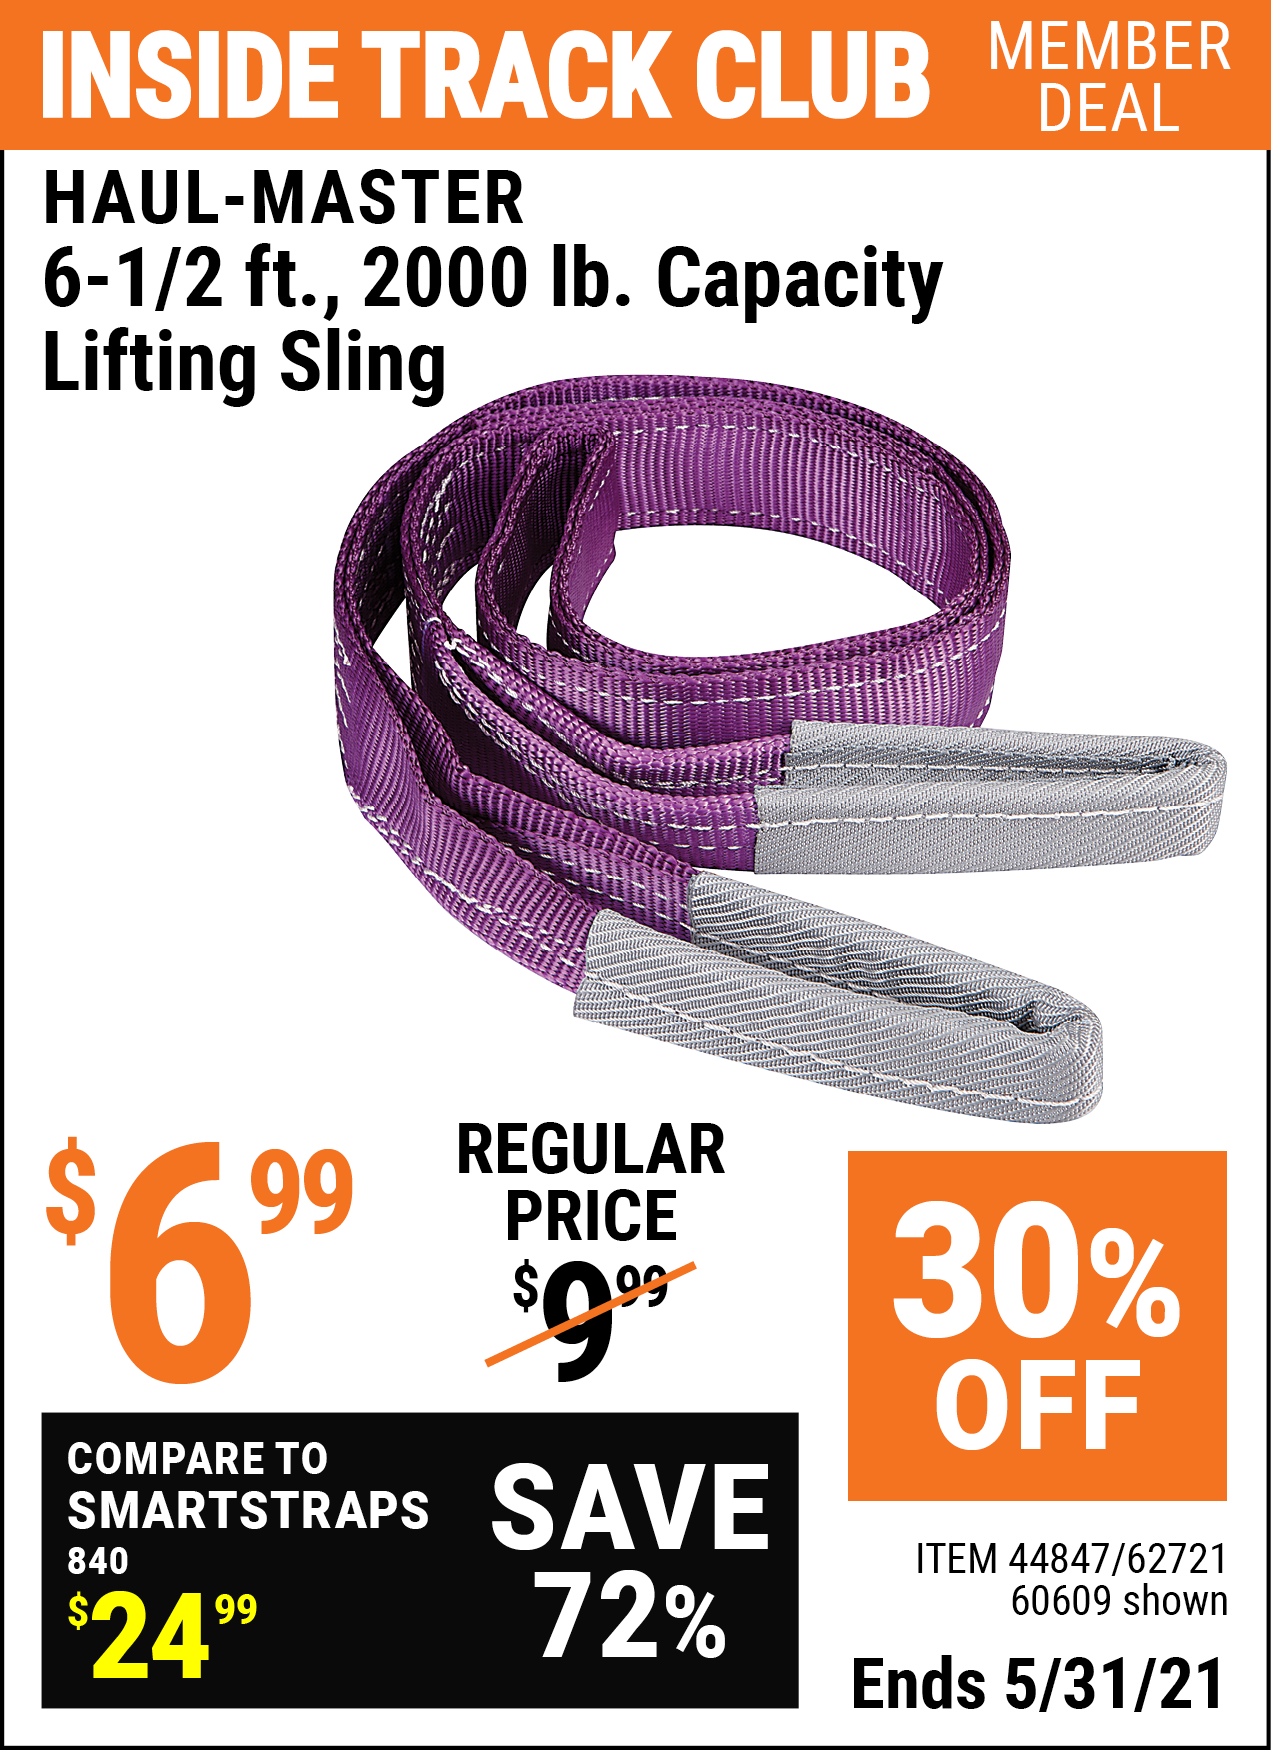 Inside Track Club members can buy the HAUL-MASTER 6-1/2 ft. 2000 lbs. Capacity Lifting Sling (Item 60609/44847/62721) for $6.99, valid through 5/31/2021.